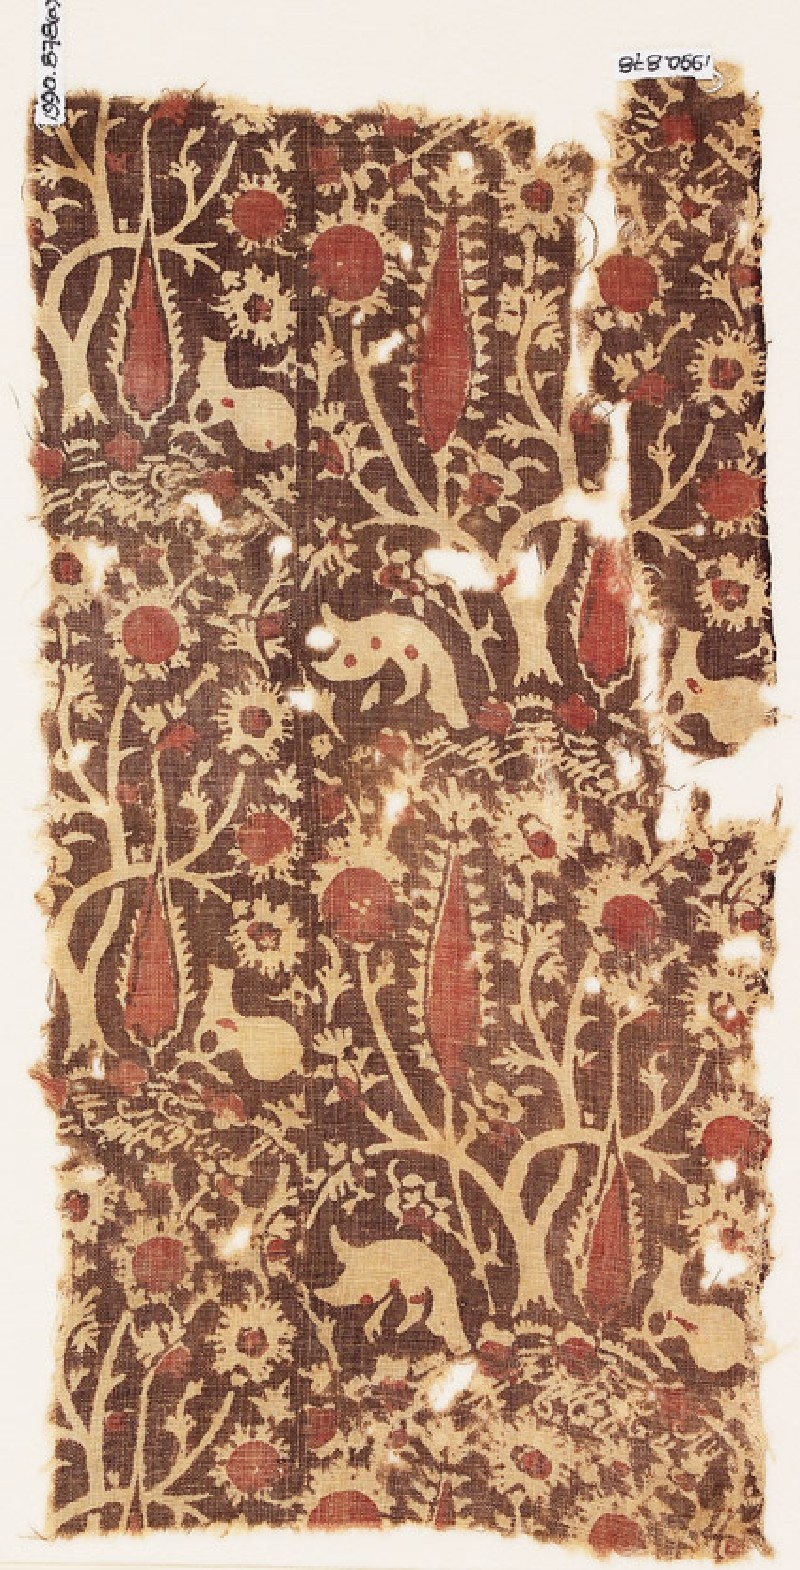 Textile fragment with elaborate trees